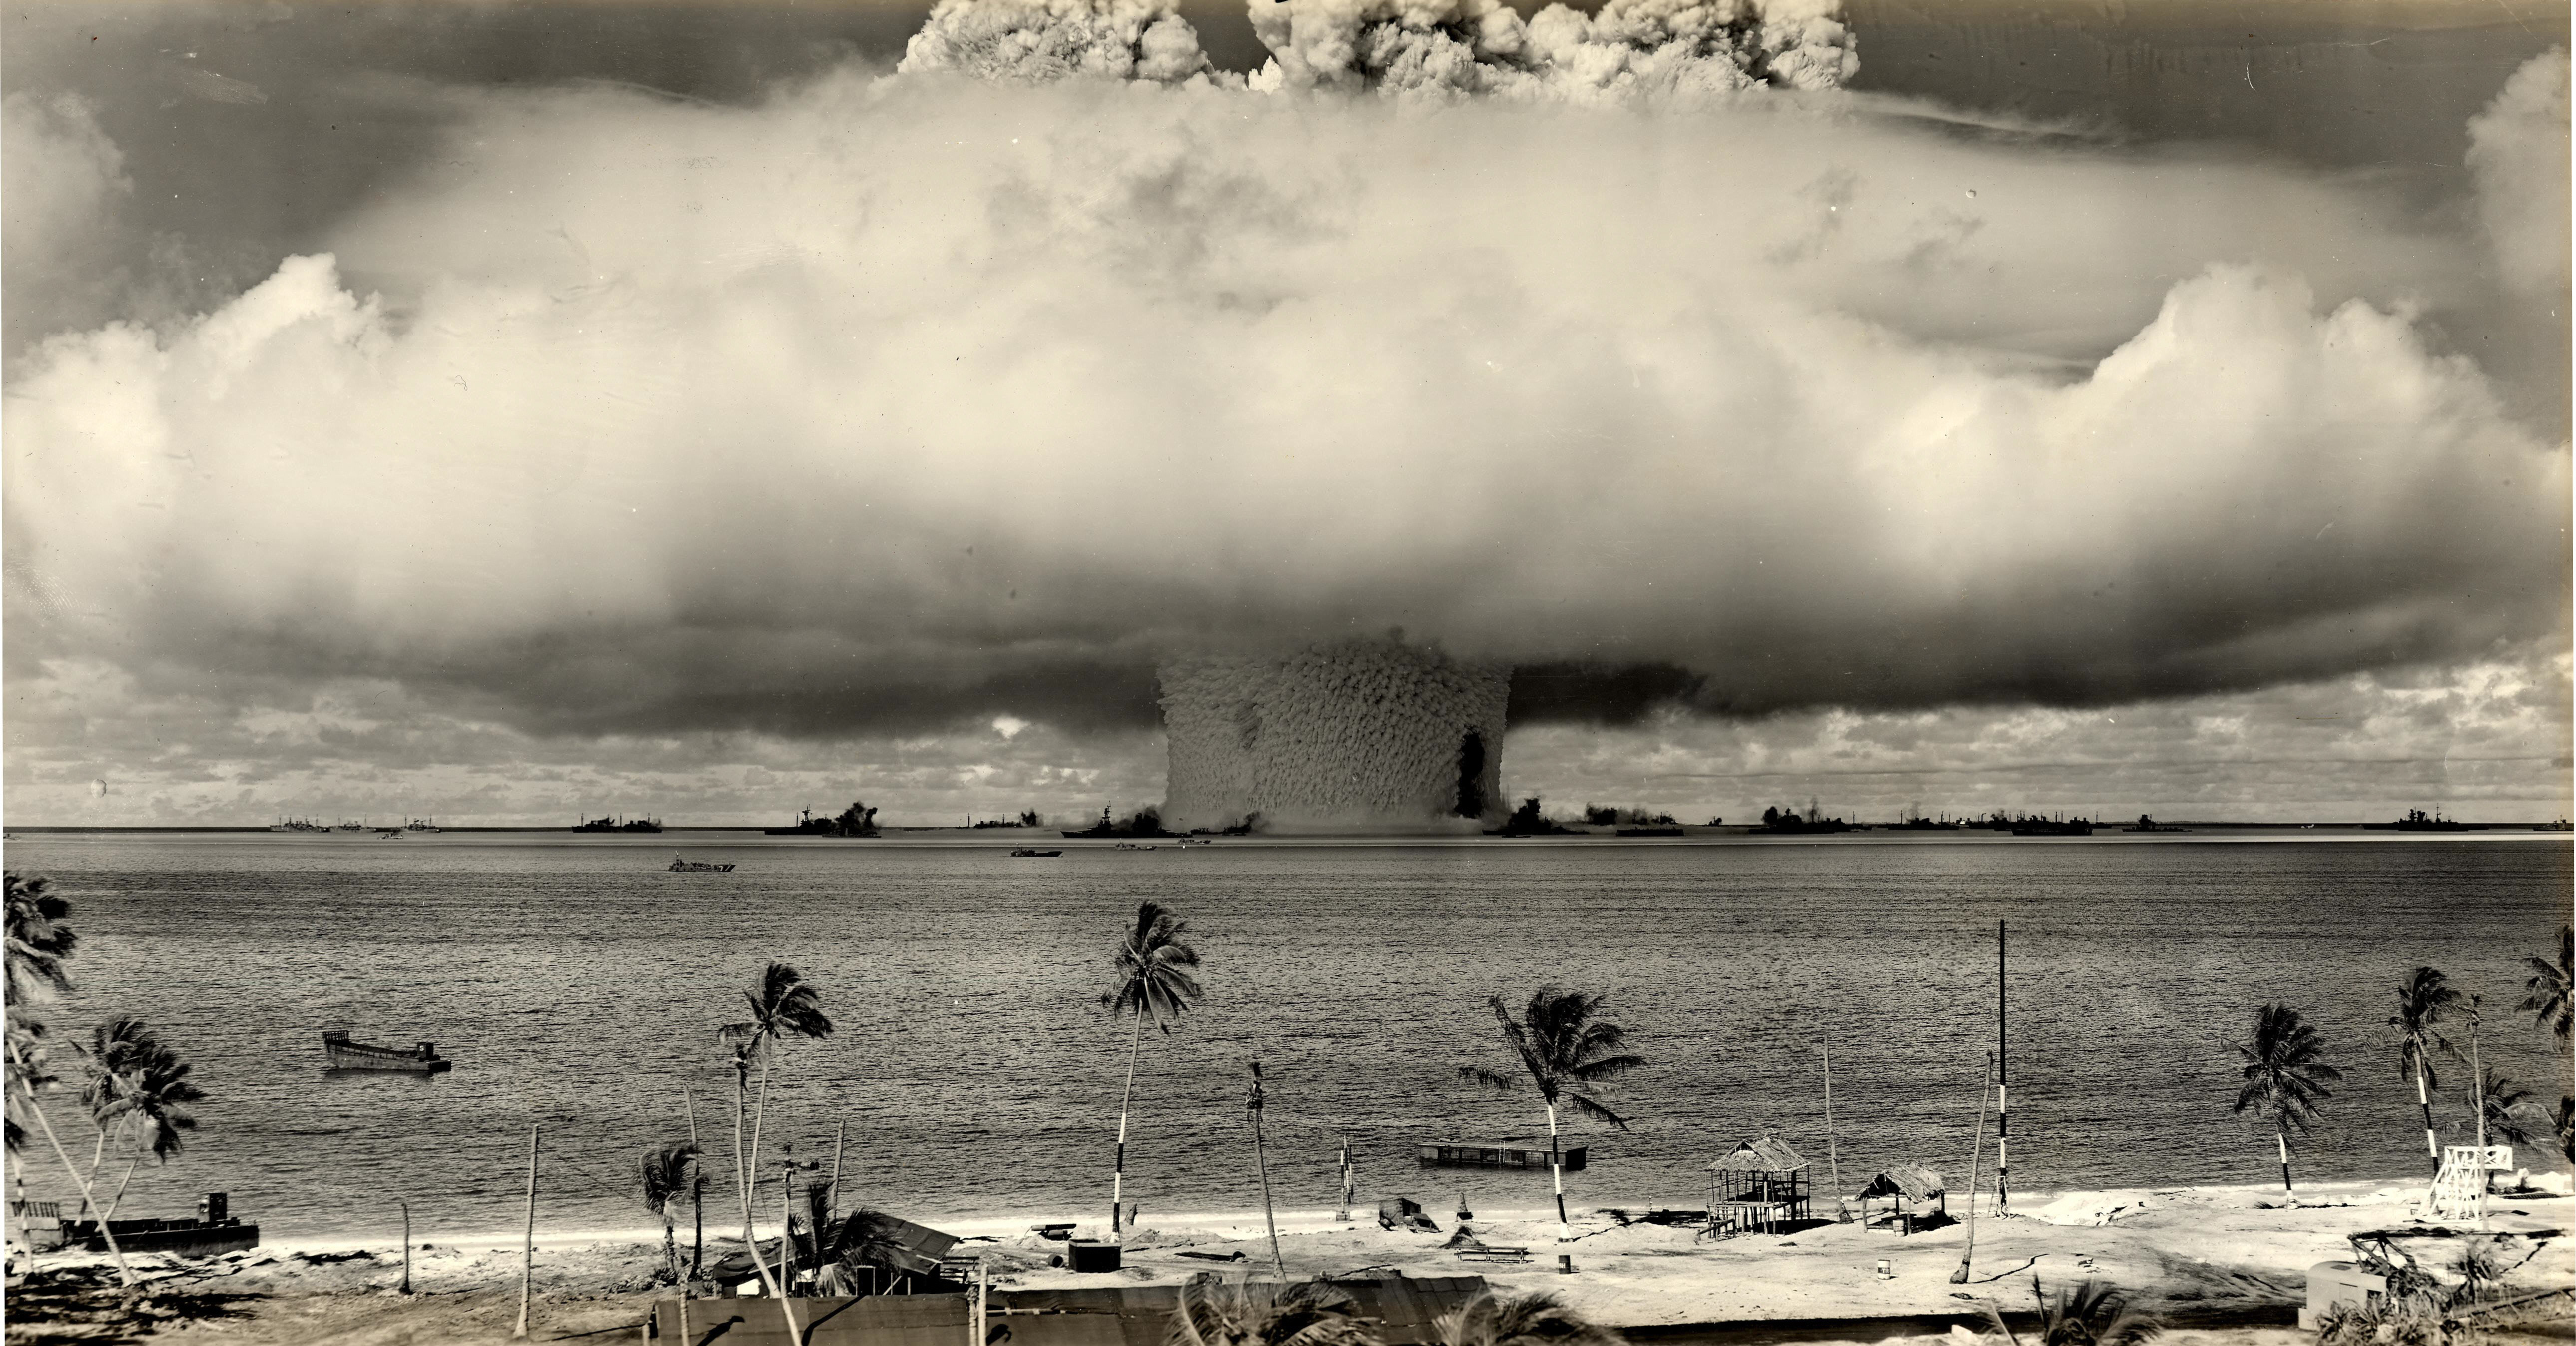 Analysis of the Atomic Bomb